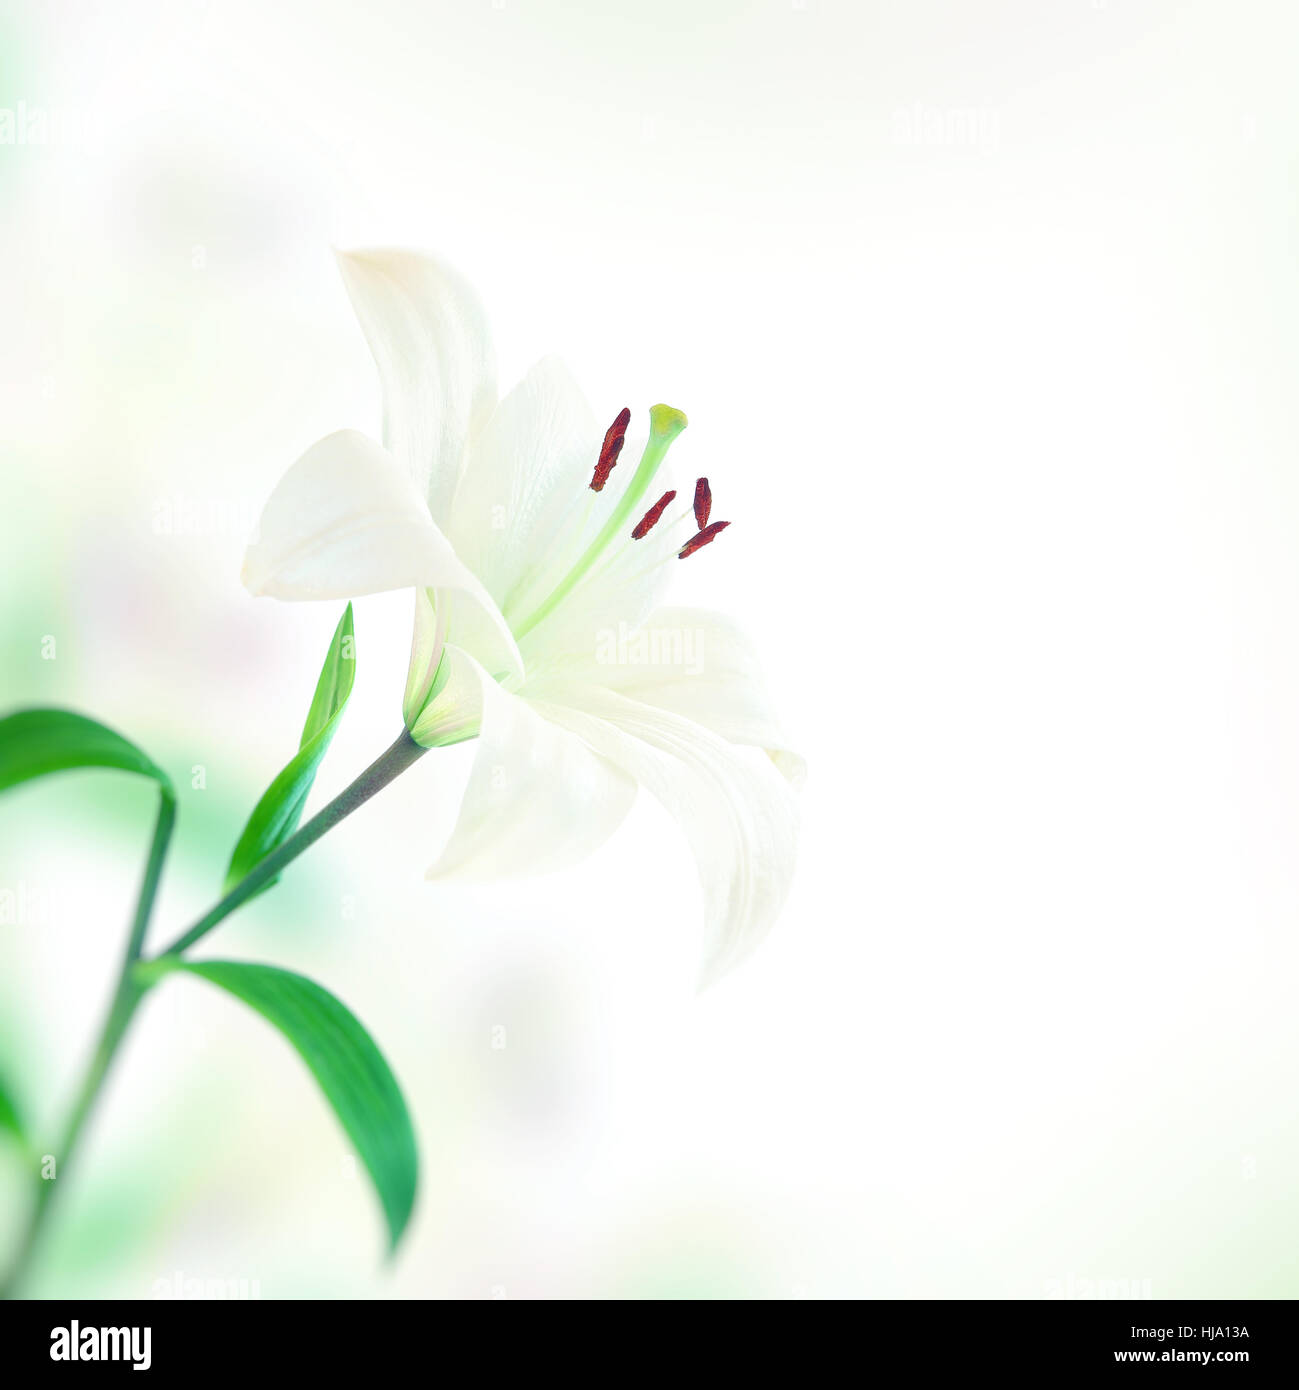 Beautiful lily flower, gentle white flower over simple background, lovely gift for mothers day, spring time season - Stock Image